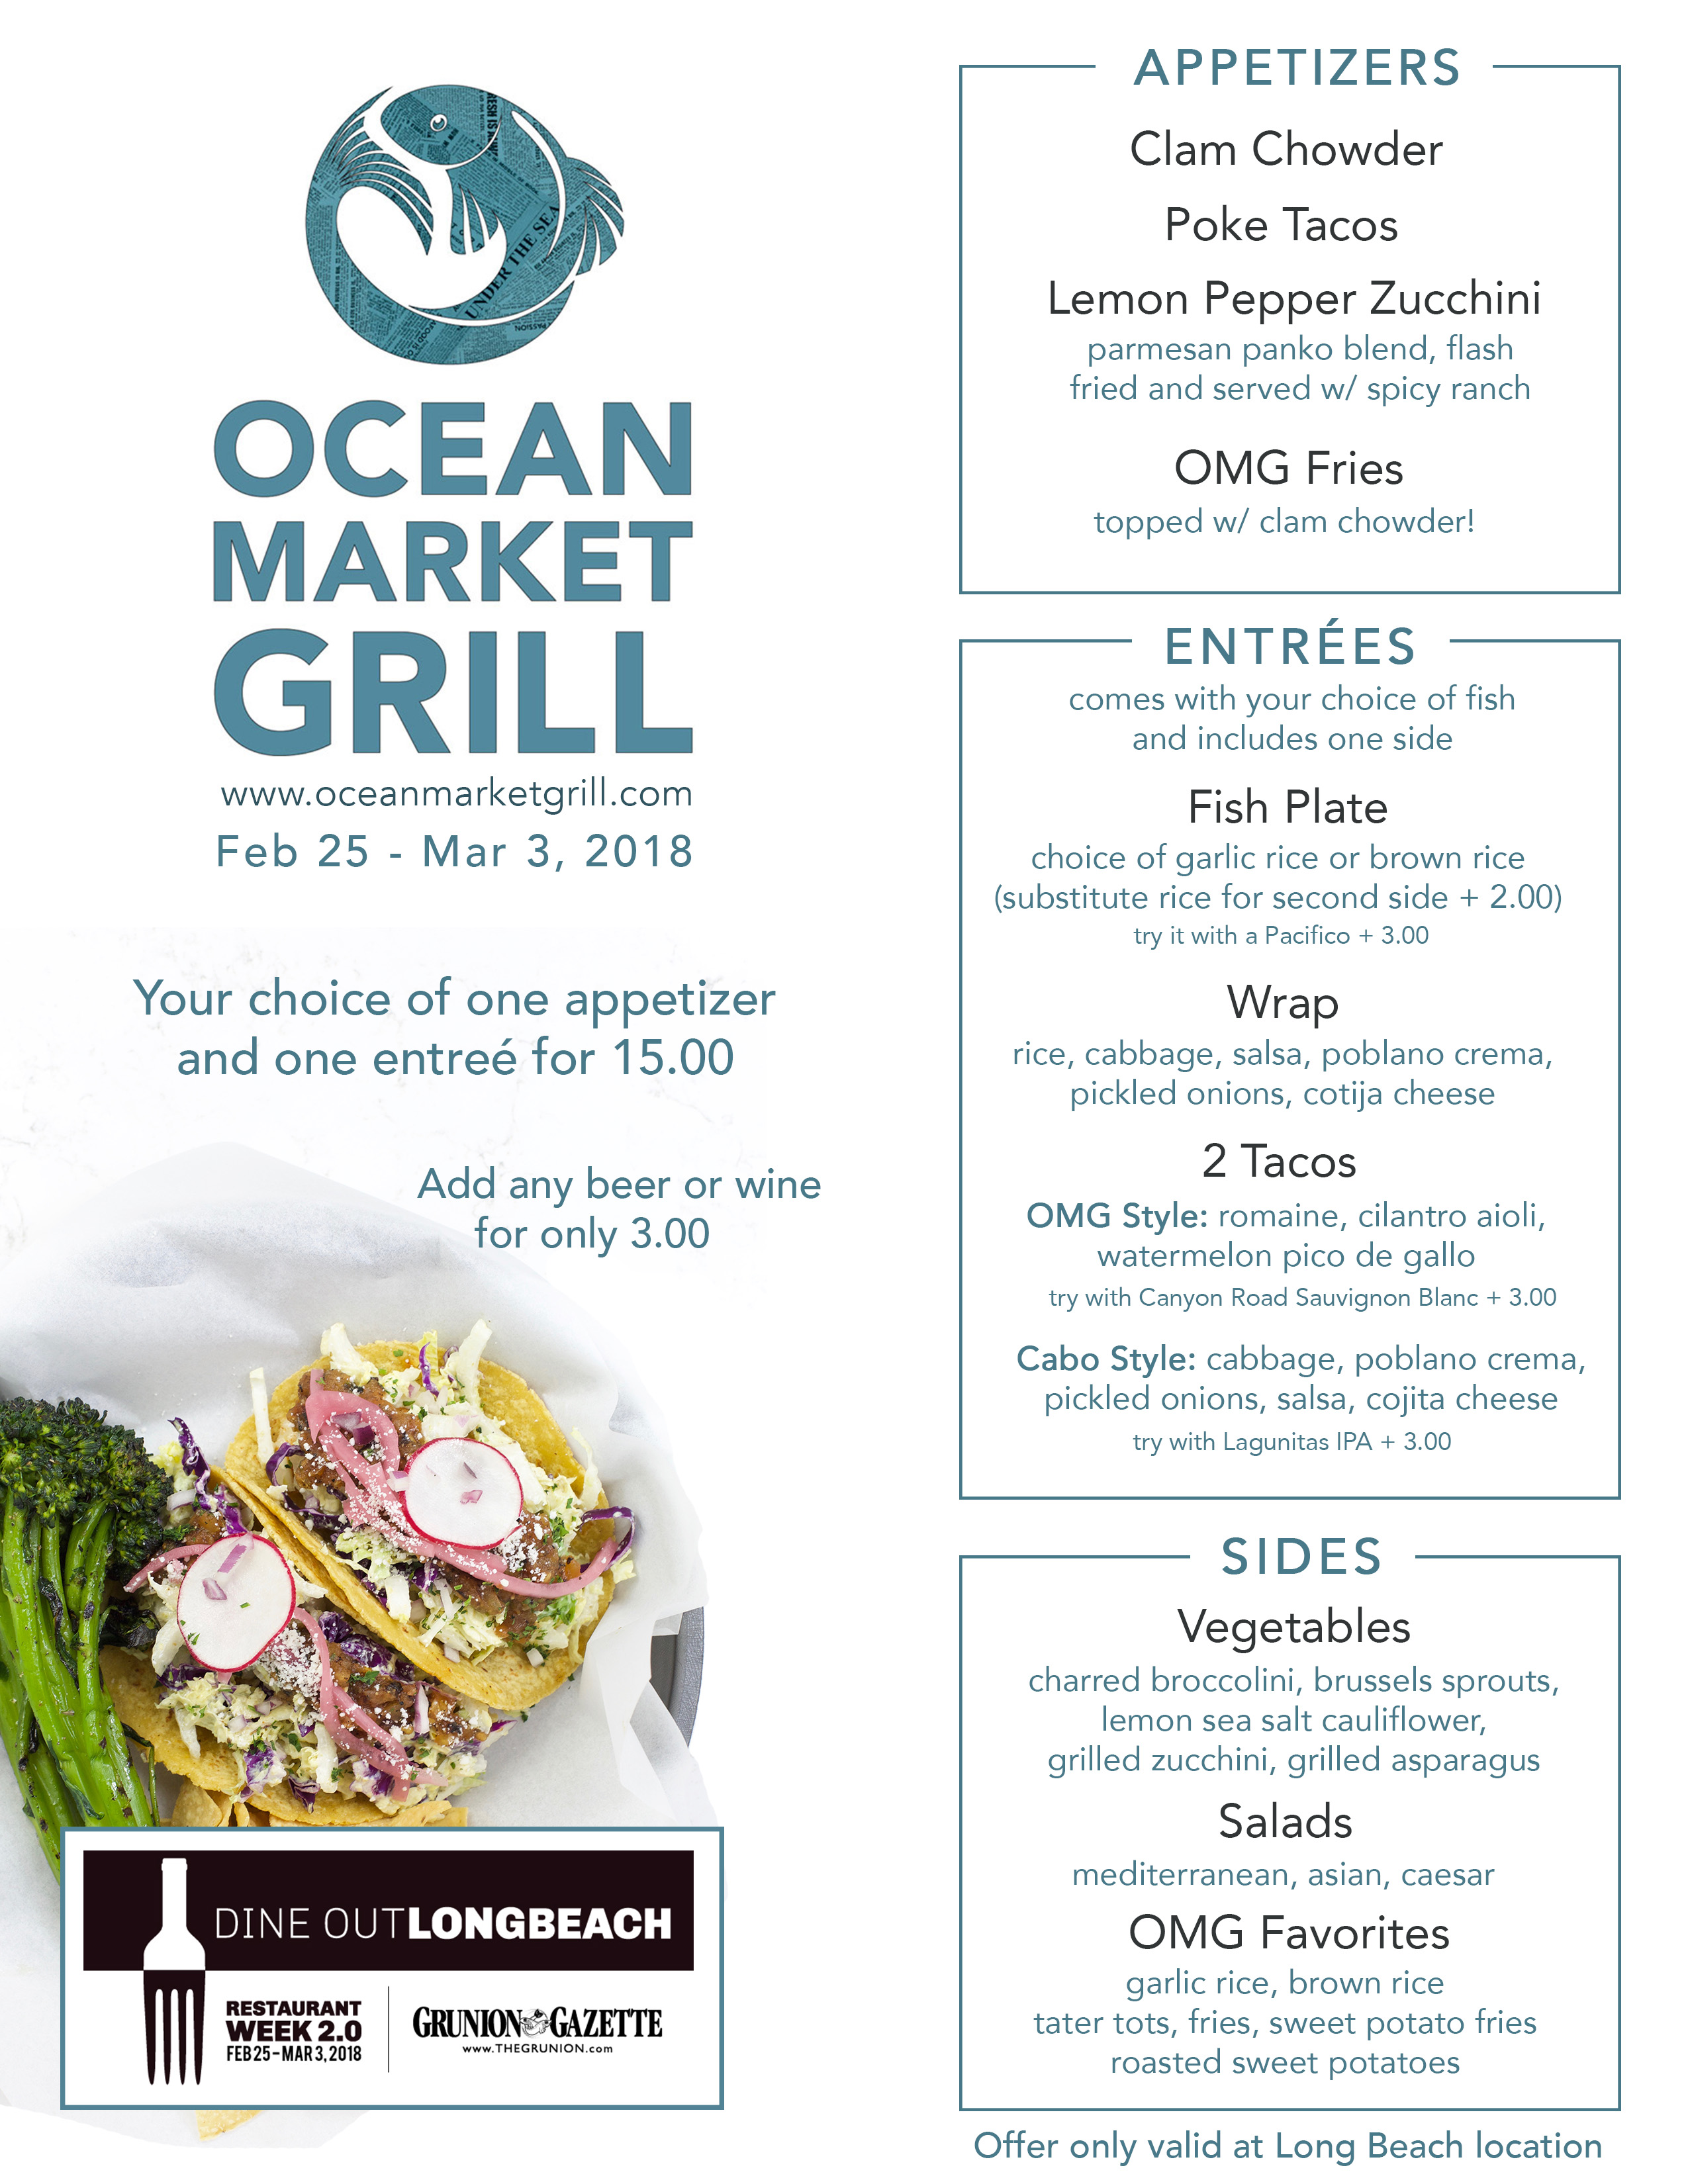 All Locations — Dine Out Long Beach, Restaurant Week 2.0